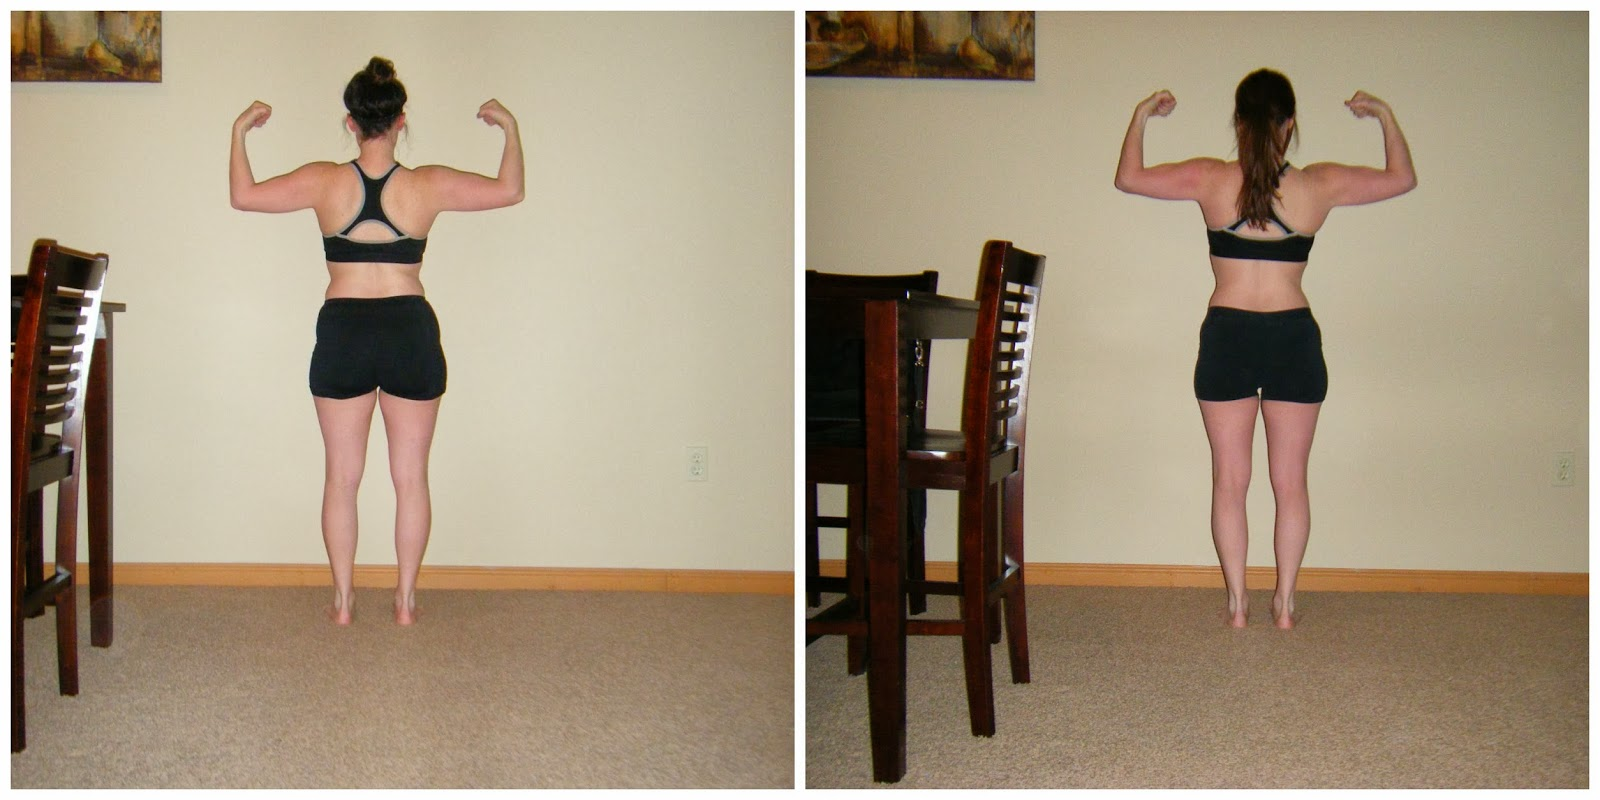 Jovan S Journey Day 30 P90x3 Eccentric Lower And 30 Day